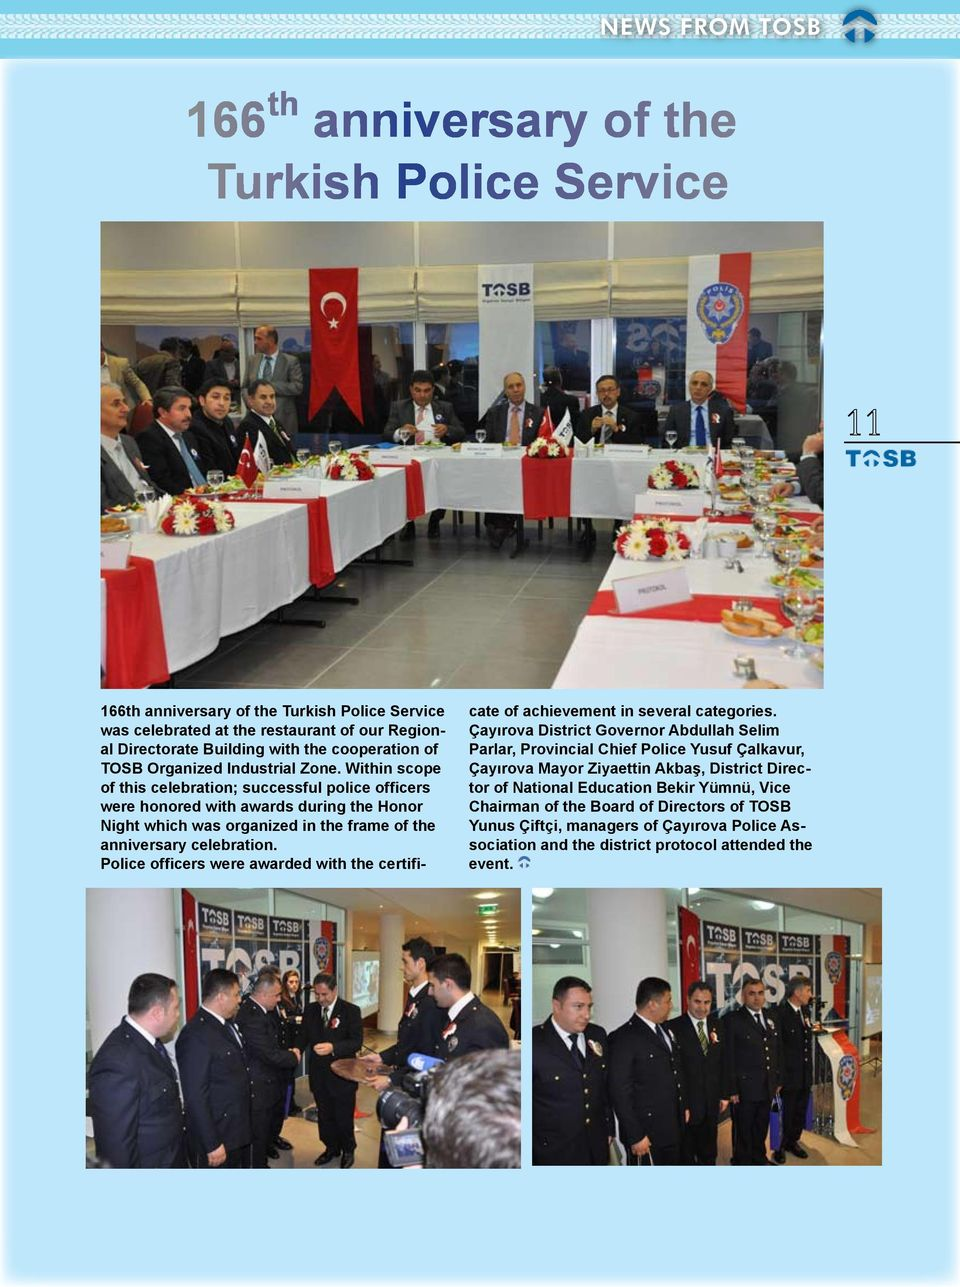 Within scope of this celebration; successful police of cers were honored with awards during the Honor Night which was organized in the frame of the anniversary celebration.